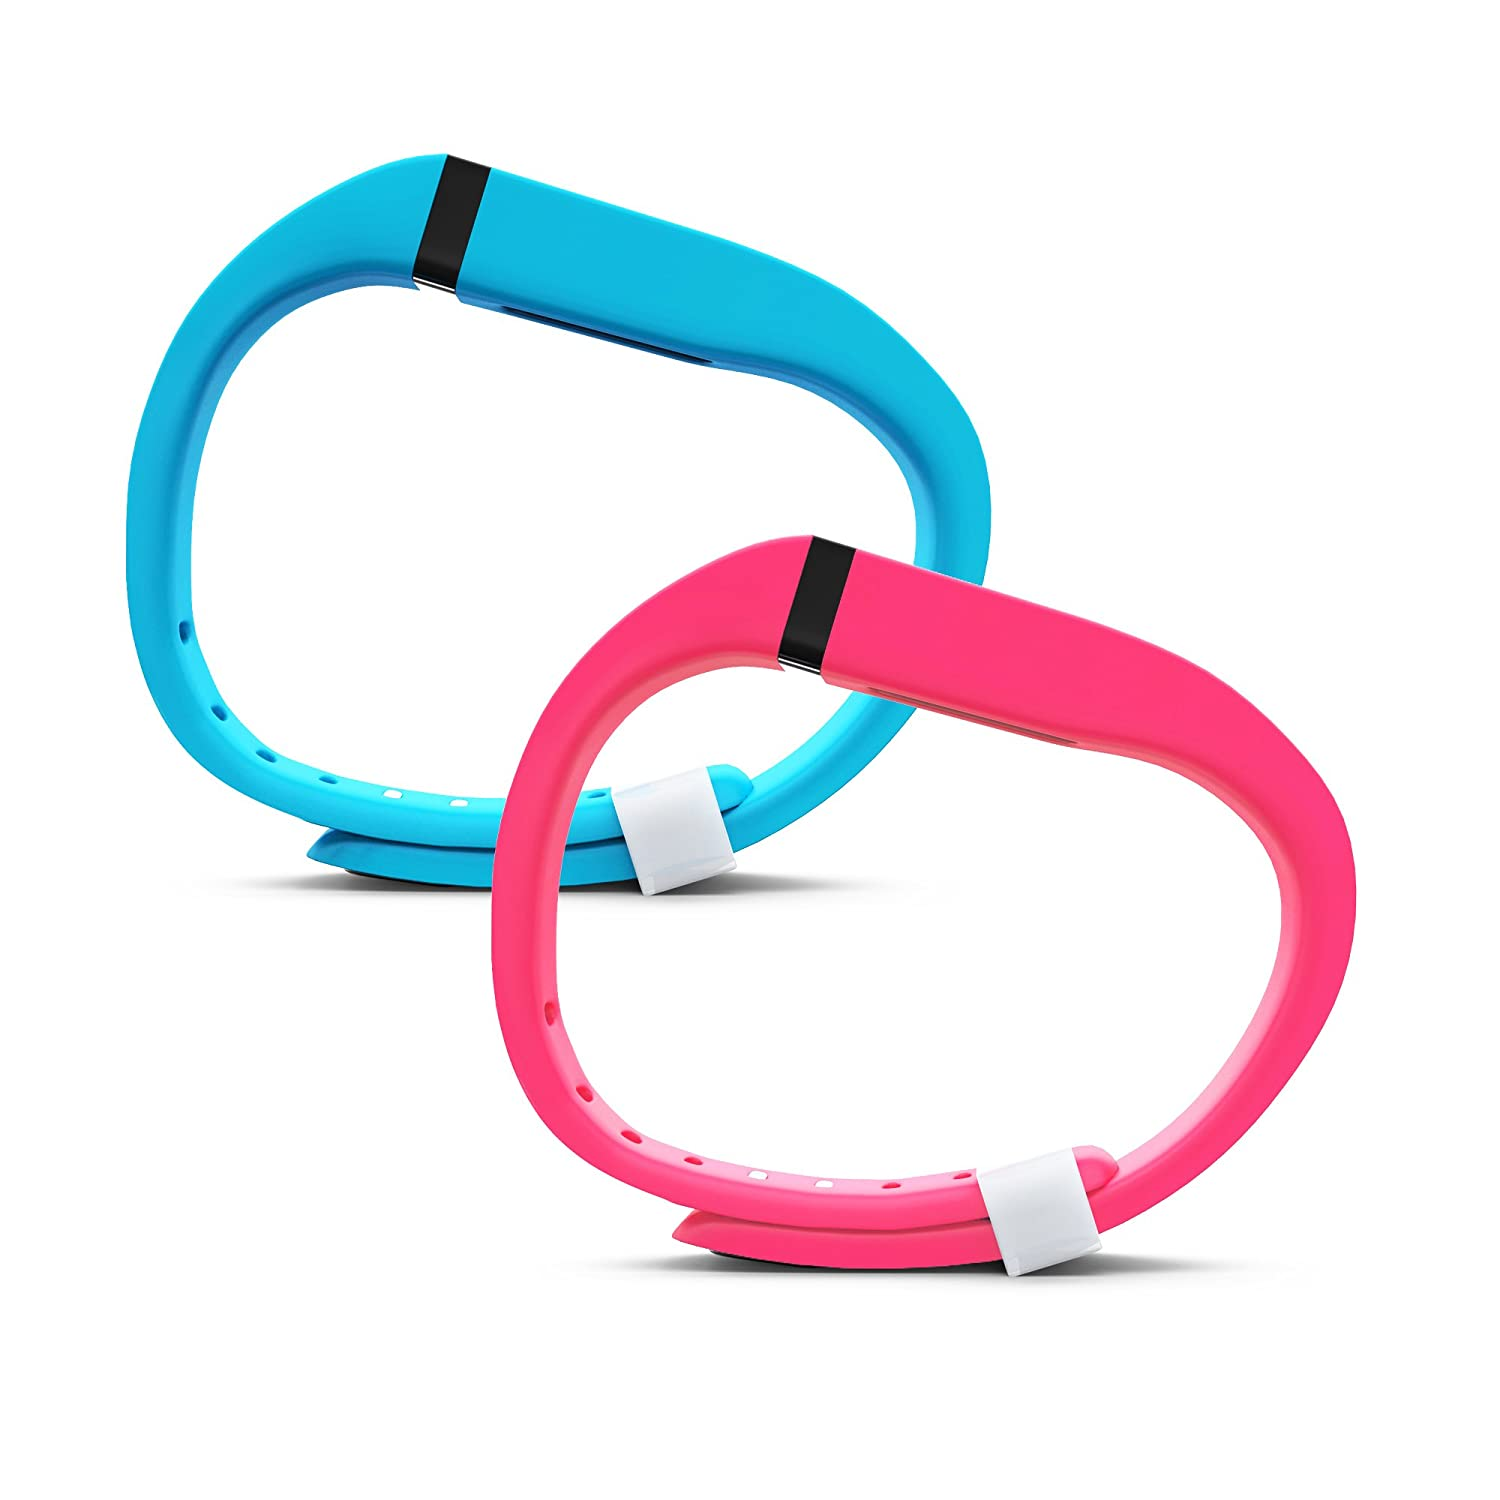 with Extra Security Clasp Large /& Small Teak Products Teak Fitbit Flex Band Replacement Bands for The Fitbit Flex